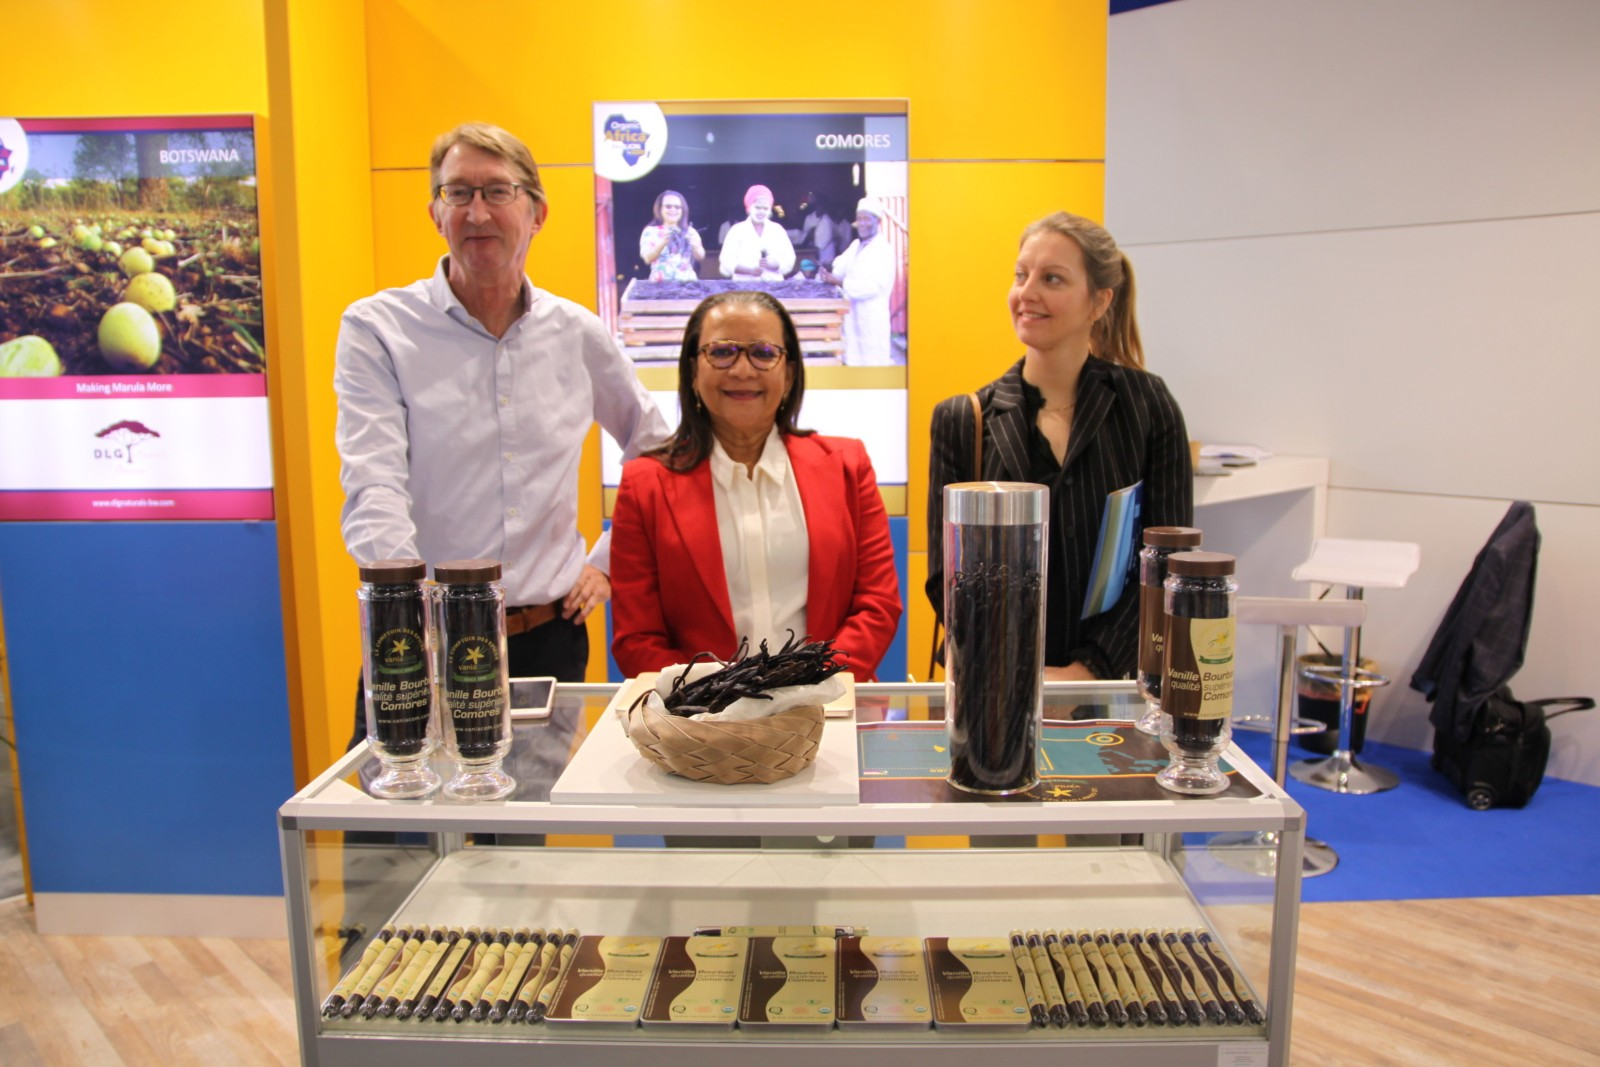 BertJan Ottens and Geertje Otten at BioFach with an African exhibitor at the Organic Pavilion